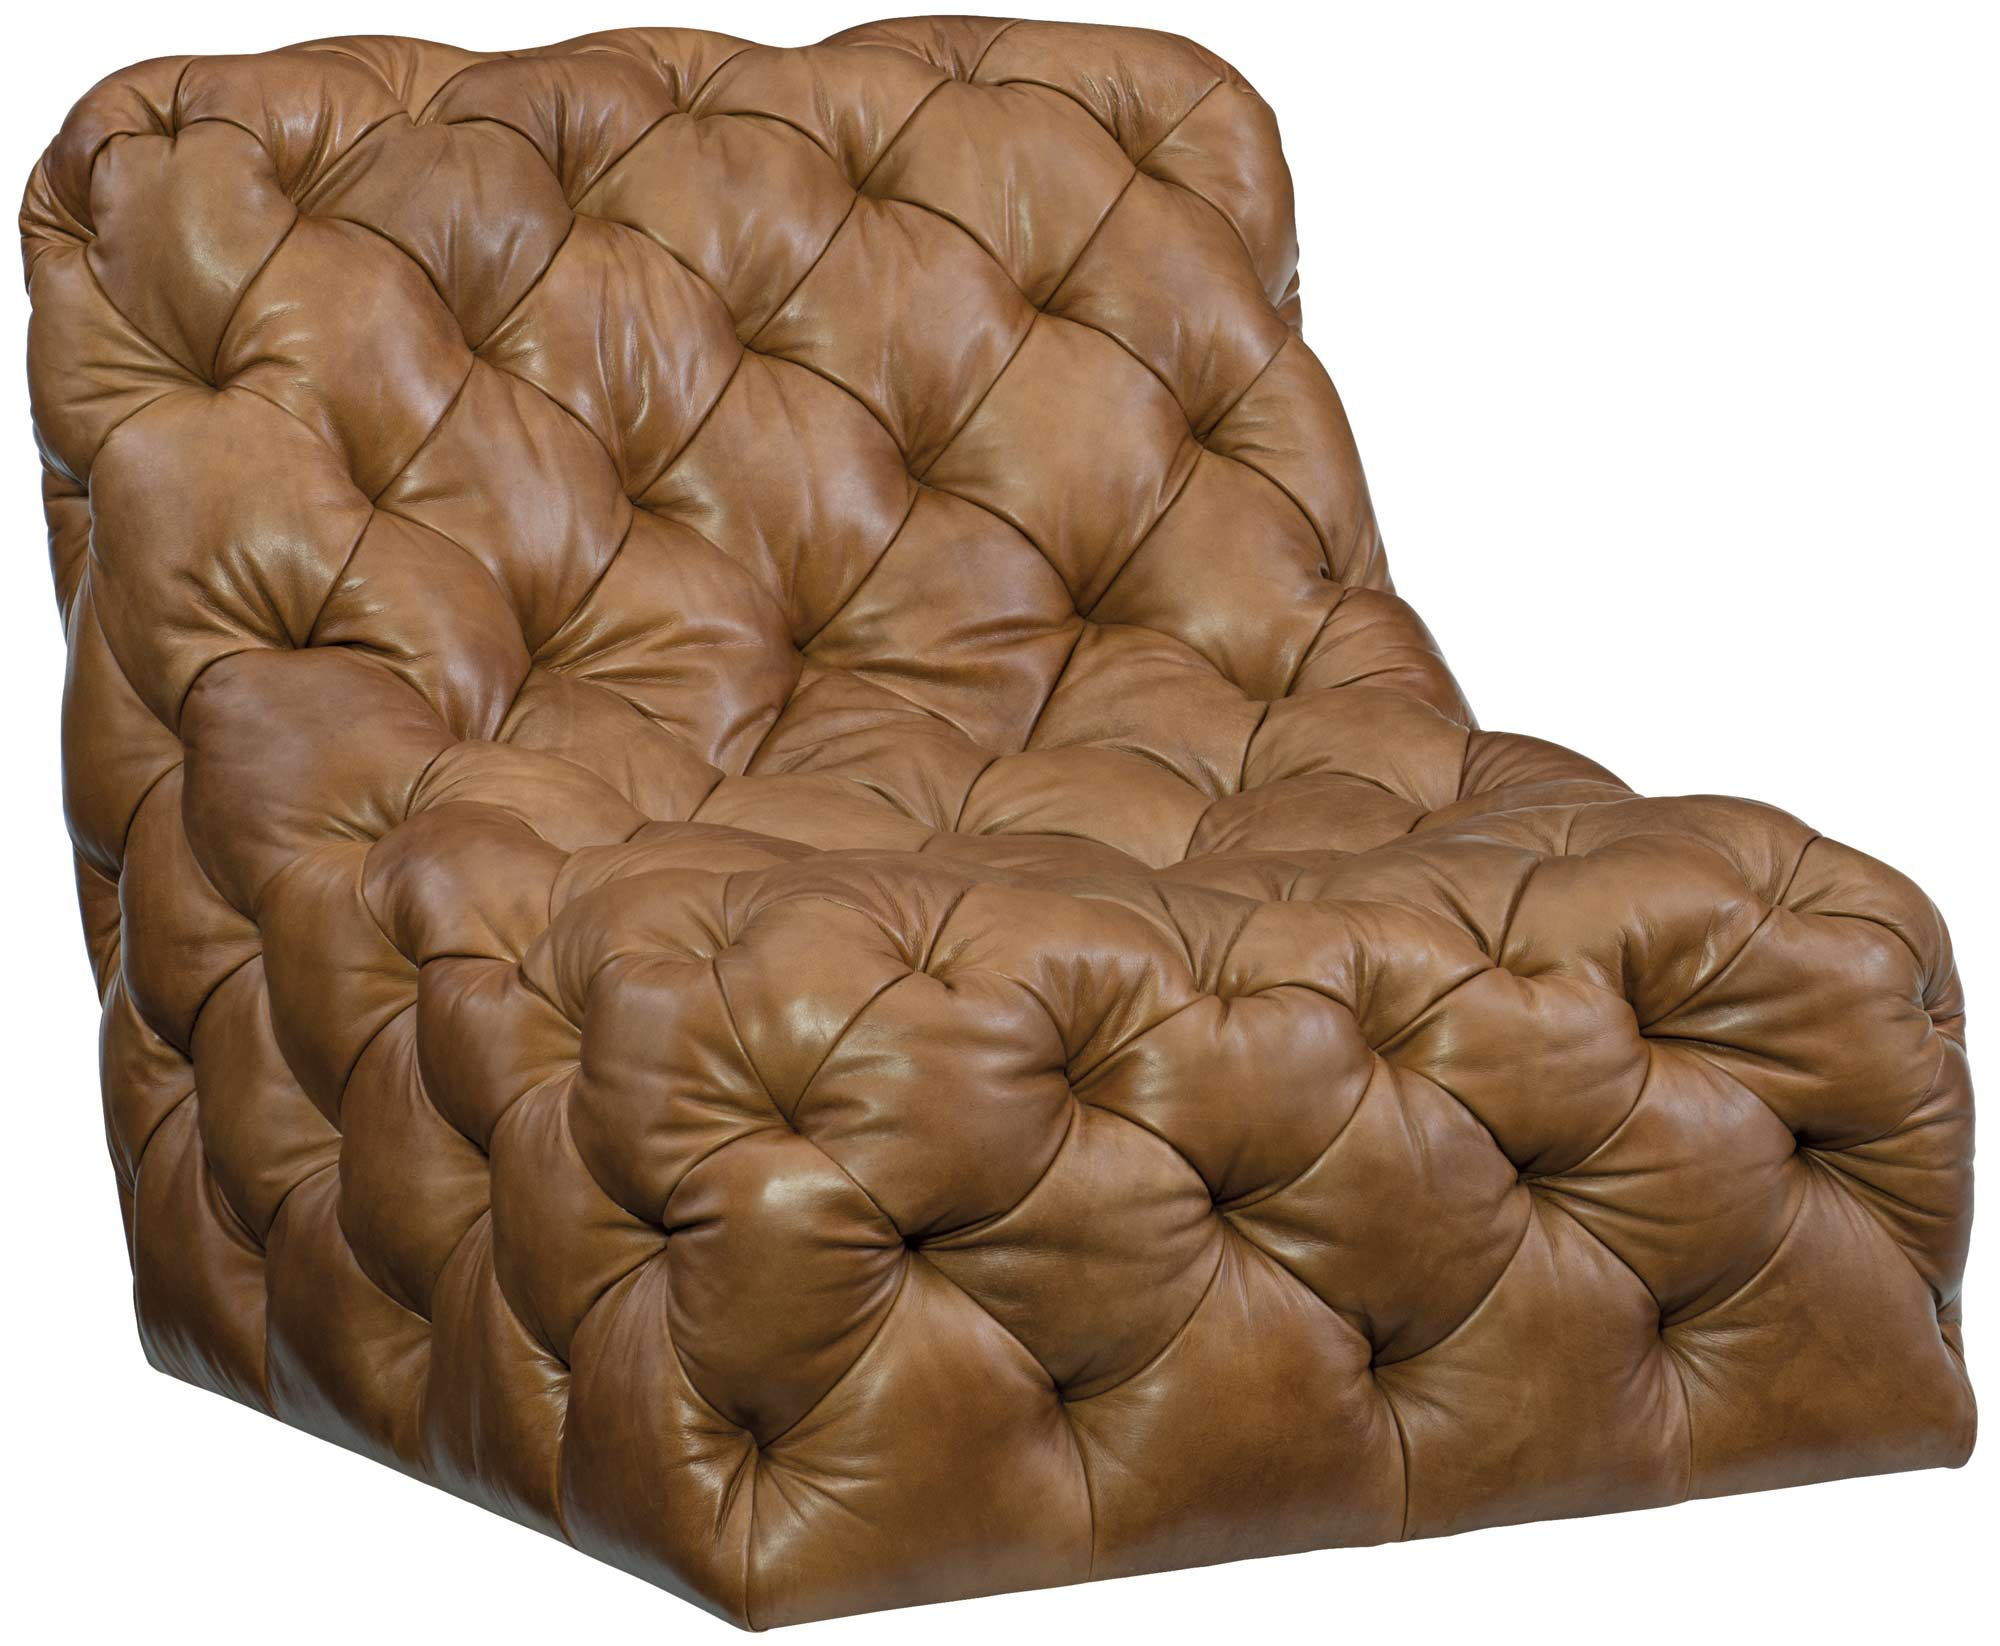 Admirable Bernhardt Leather Chair Inzonedesignstudio Interior Chair Design Inzonedesignstudiocom